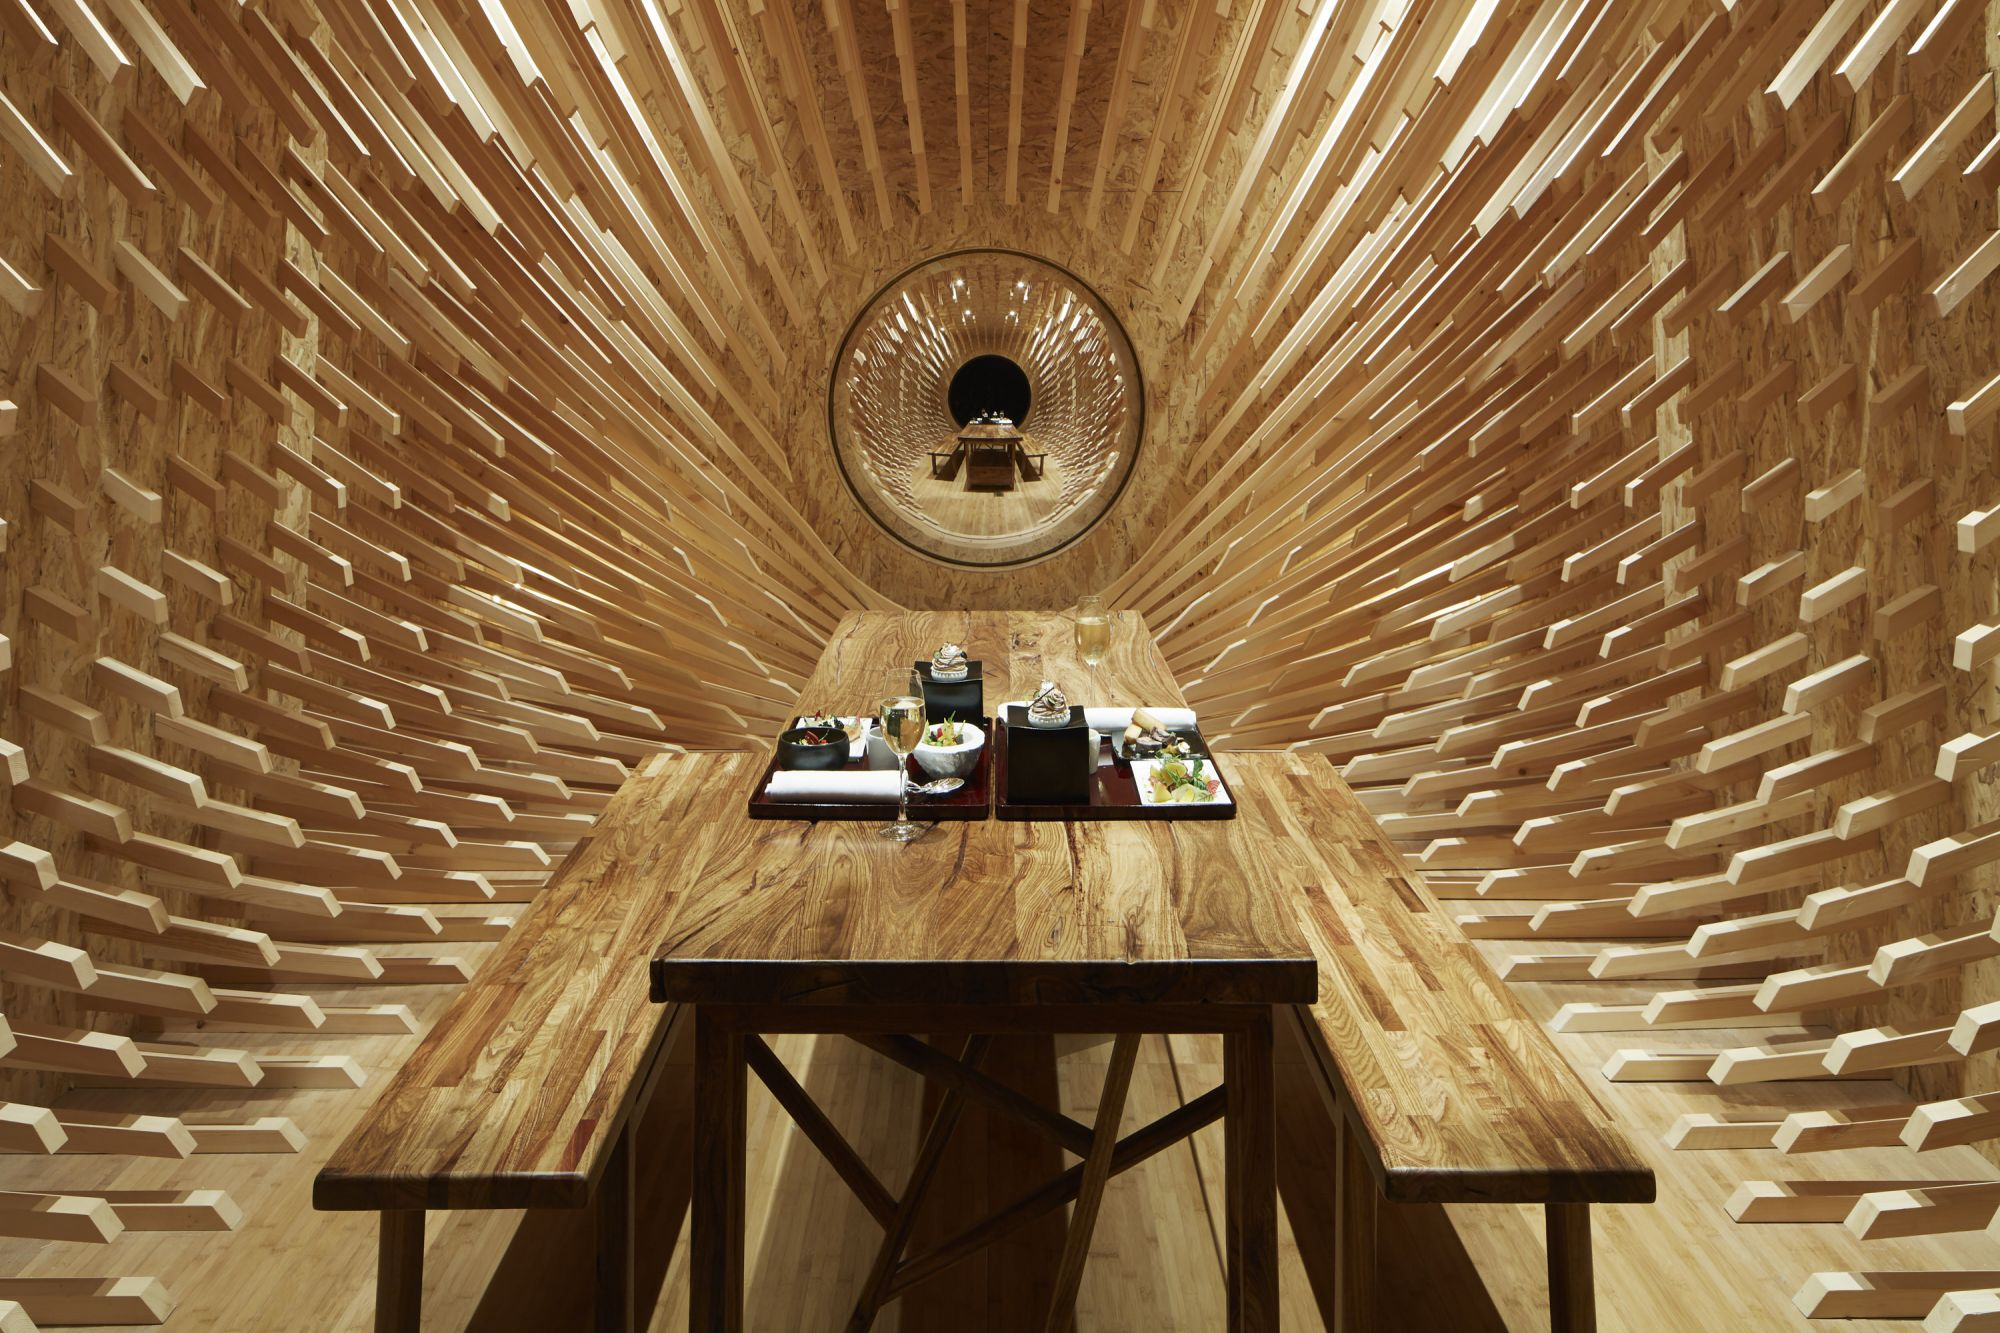 Inside The Wonder Room, An Experimental Teahouse Where Gastronomy And Gong Baths Co-Exist